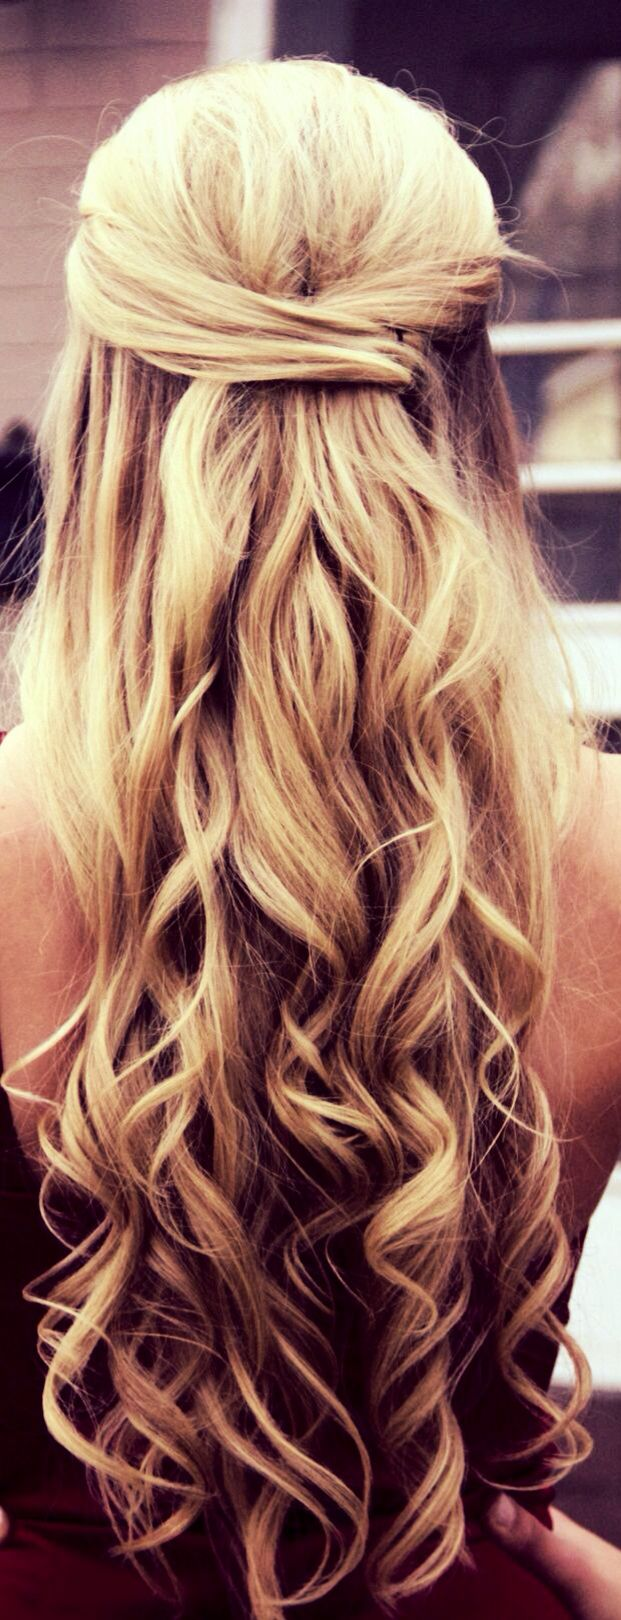 Half up half down curly hair gorgeoushair prom hair pinterest